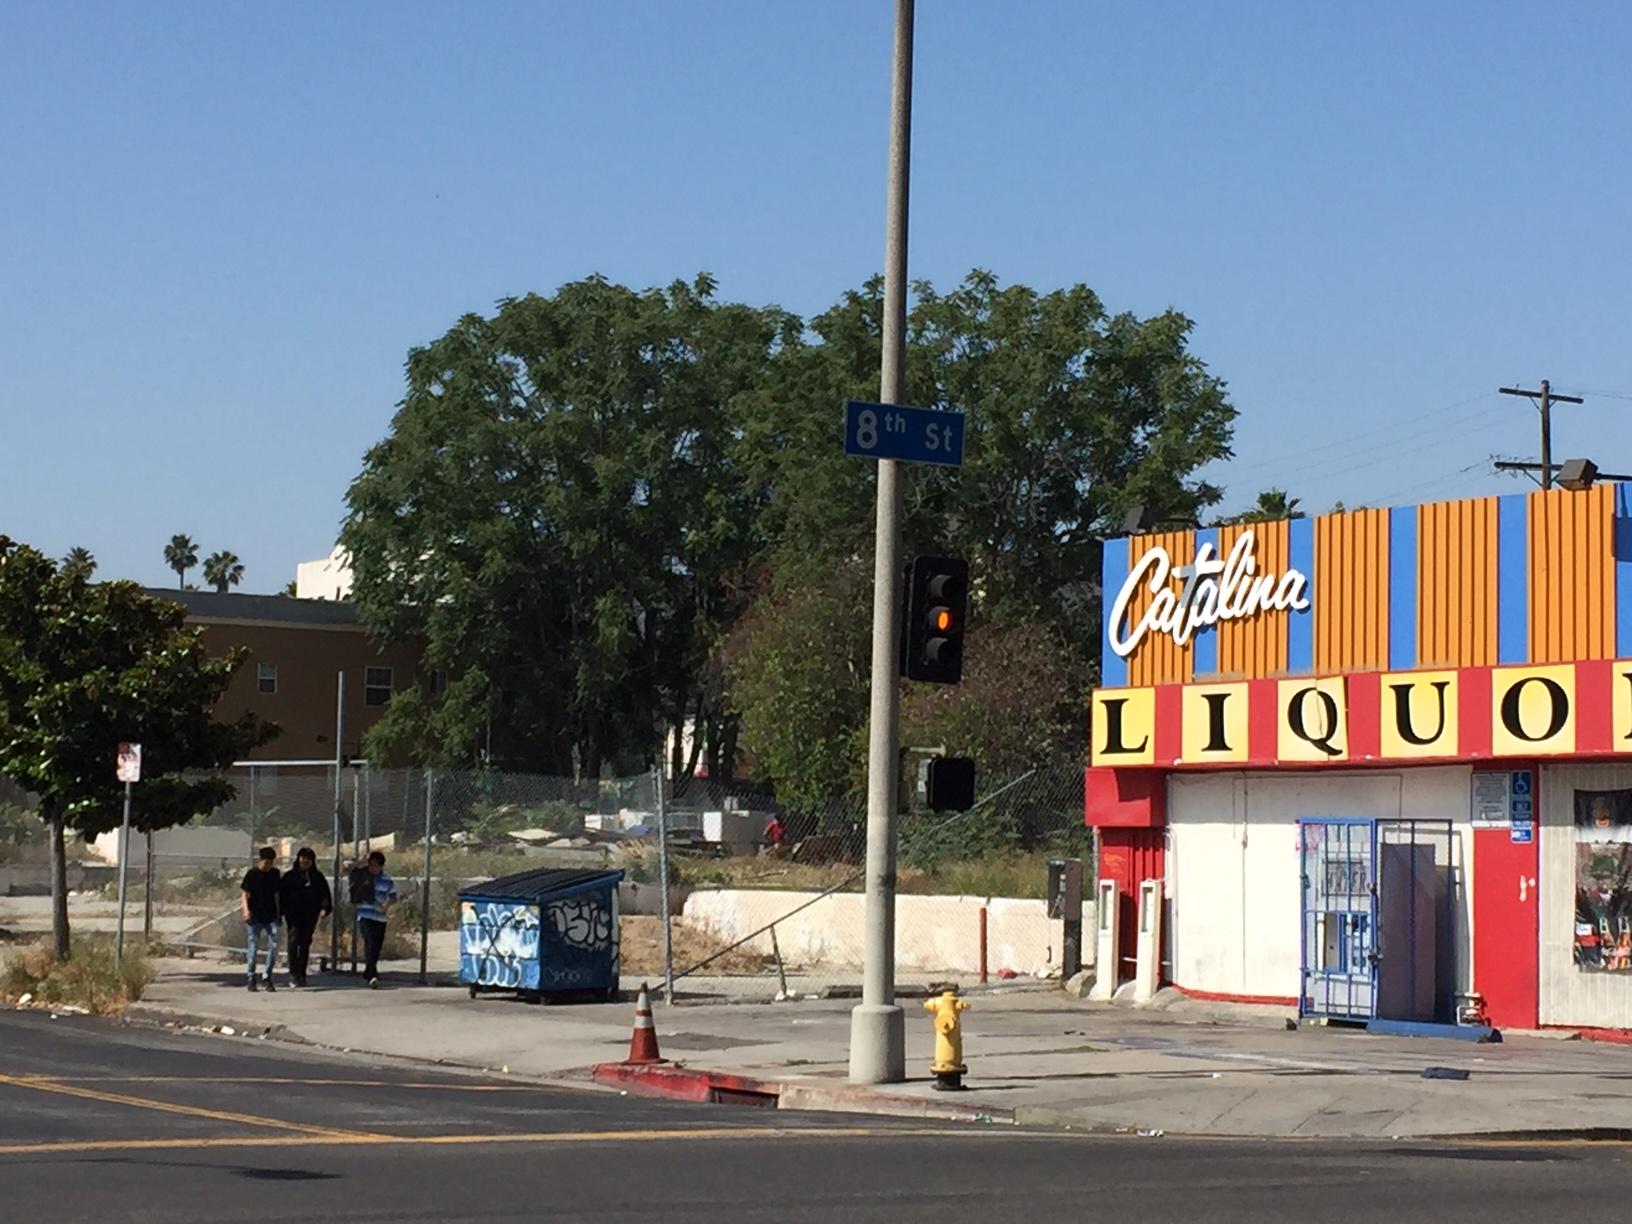 """The site for the city approved 27-story """"Catalina Tower"""" at the corner of 8th Street and S. Catalina Street."""